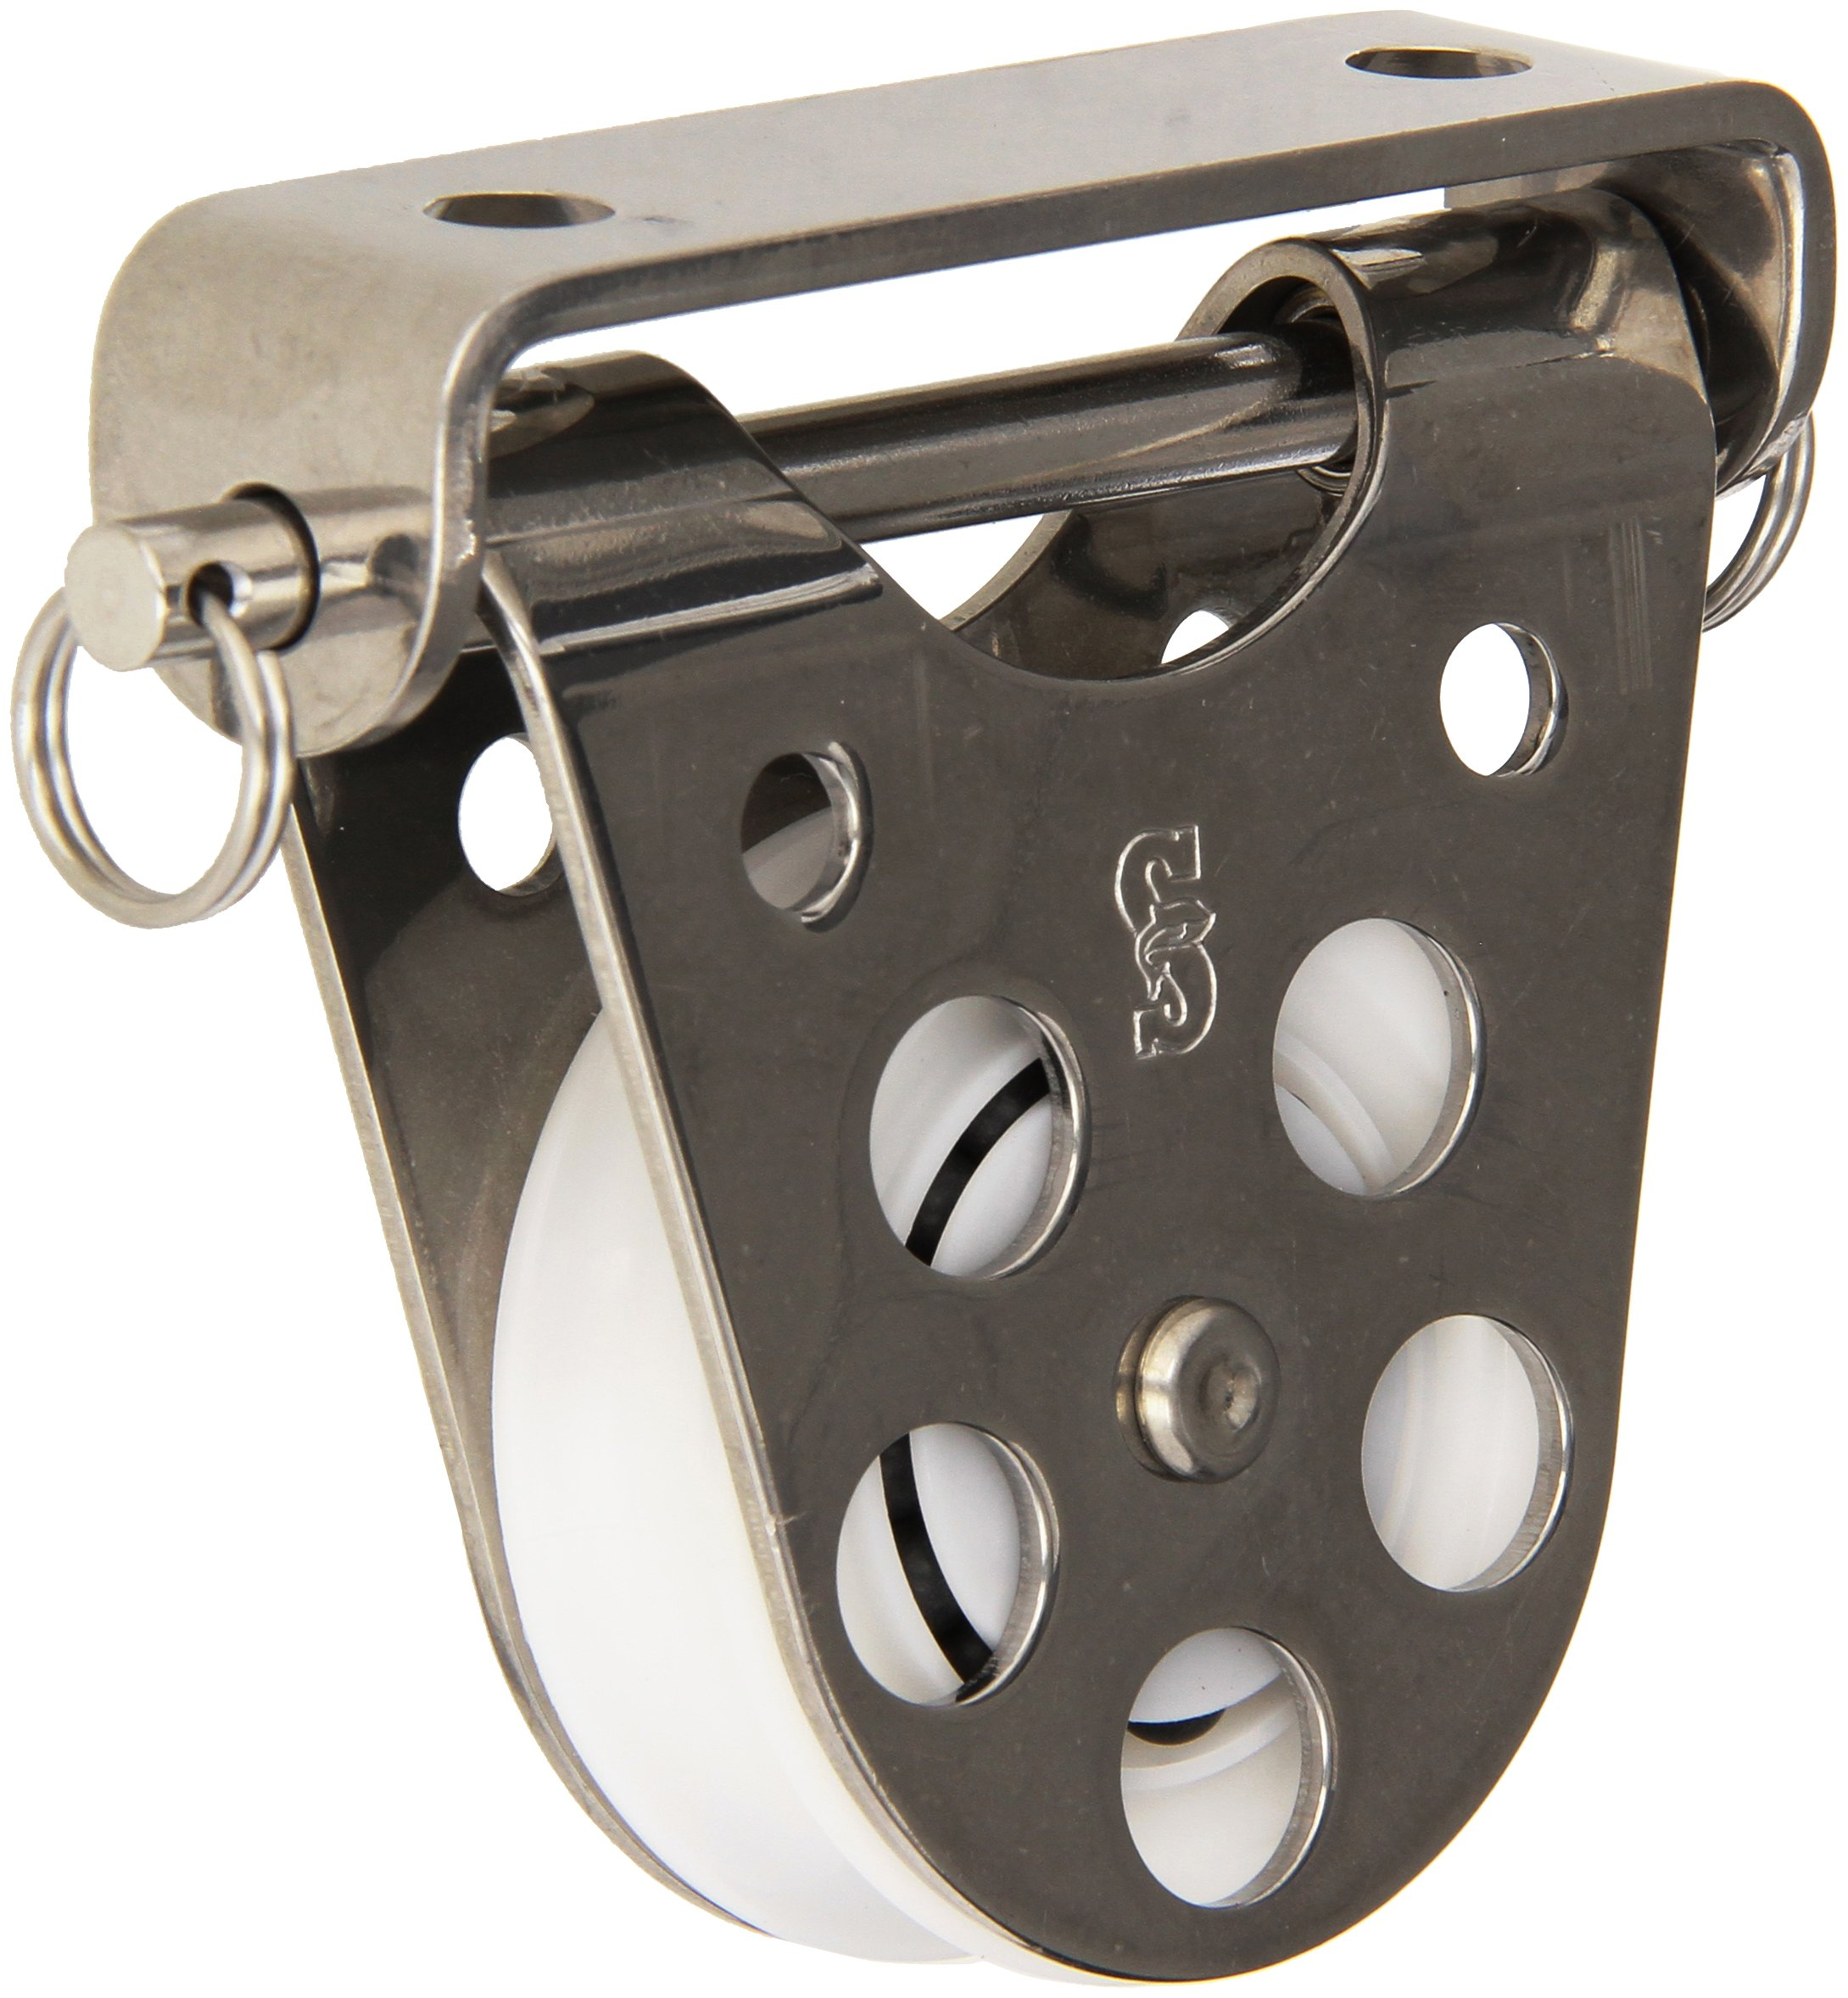 Schaefer Hinged Fairlead Block with Stainless Steel Cheeks and Delrin Ball Bearing Sheave